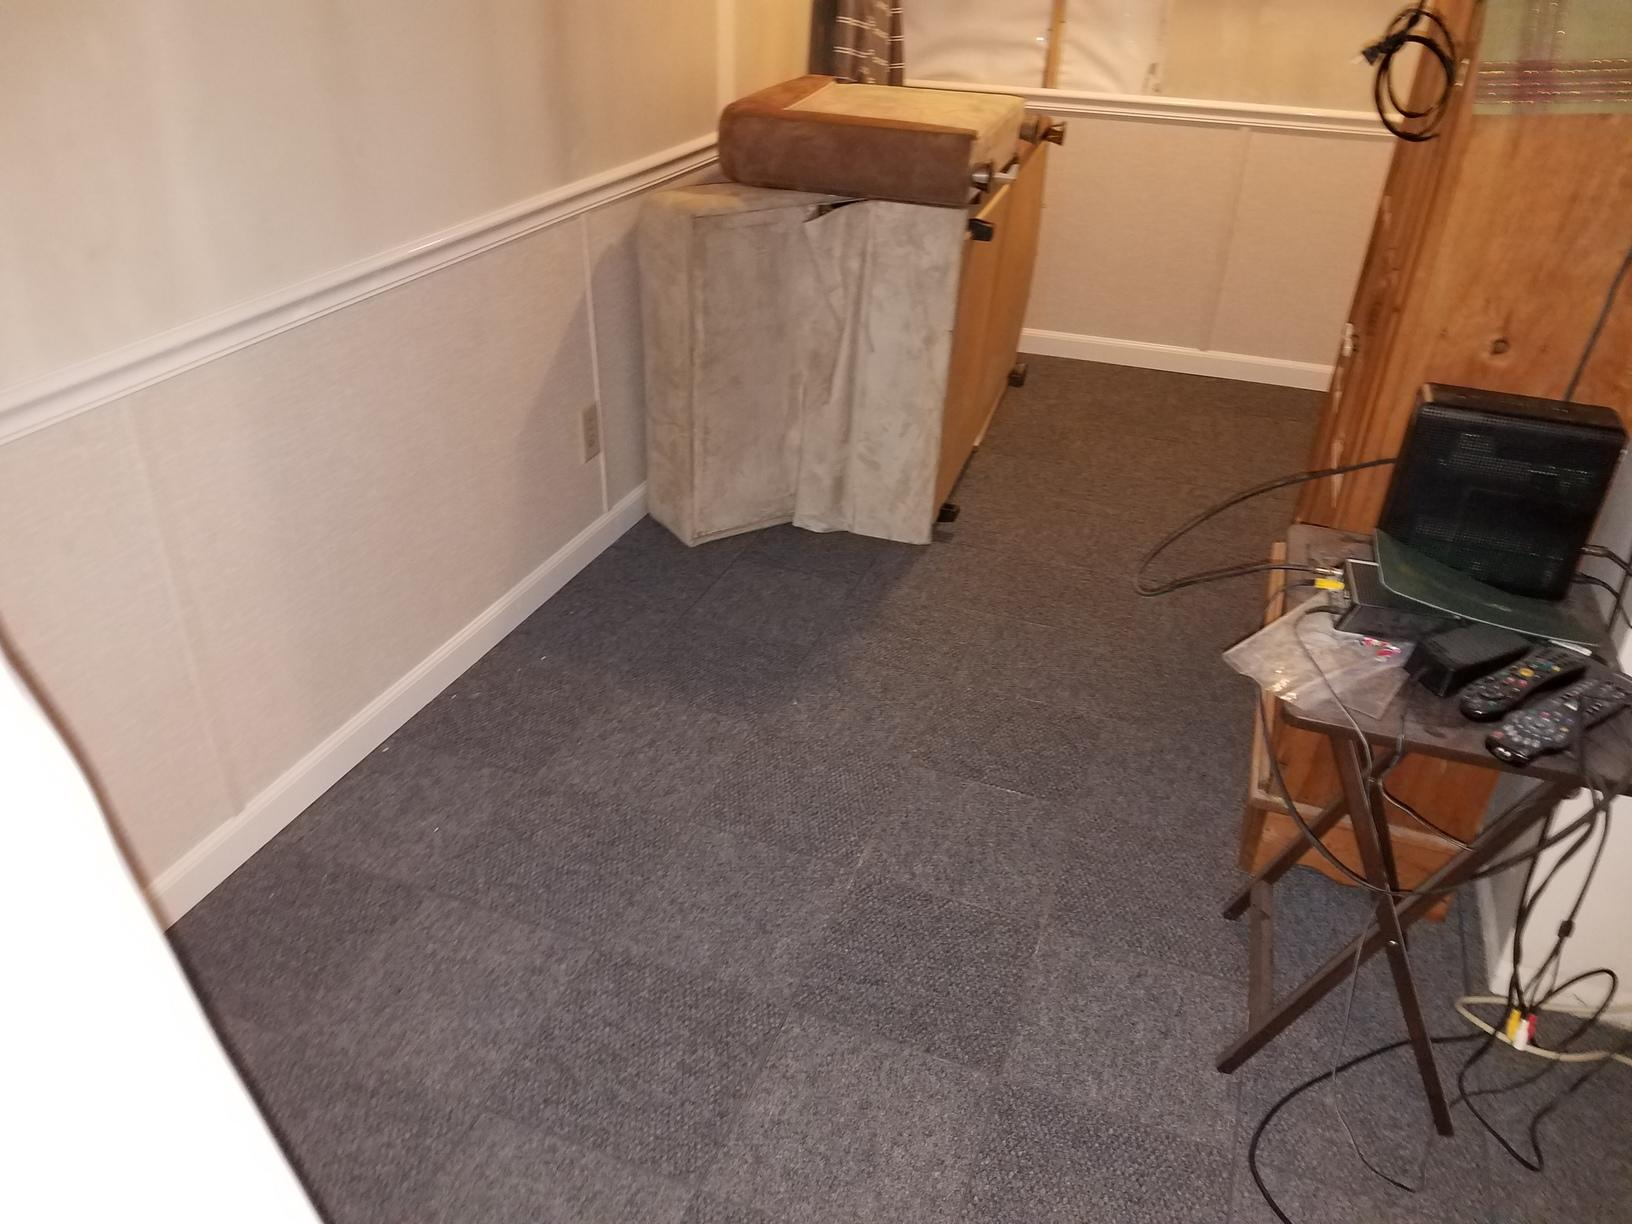 The ThermalDry flooring is made of all organic materials that will not mold or warp with water.